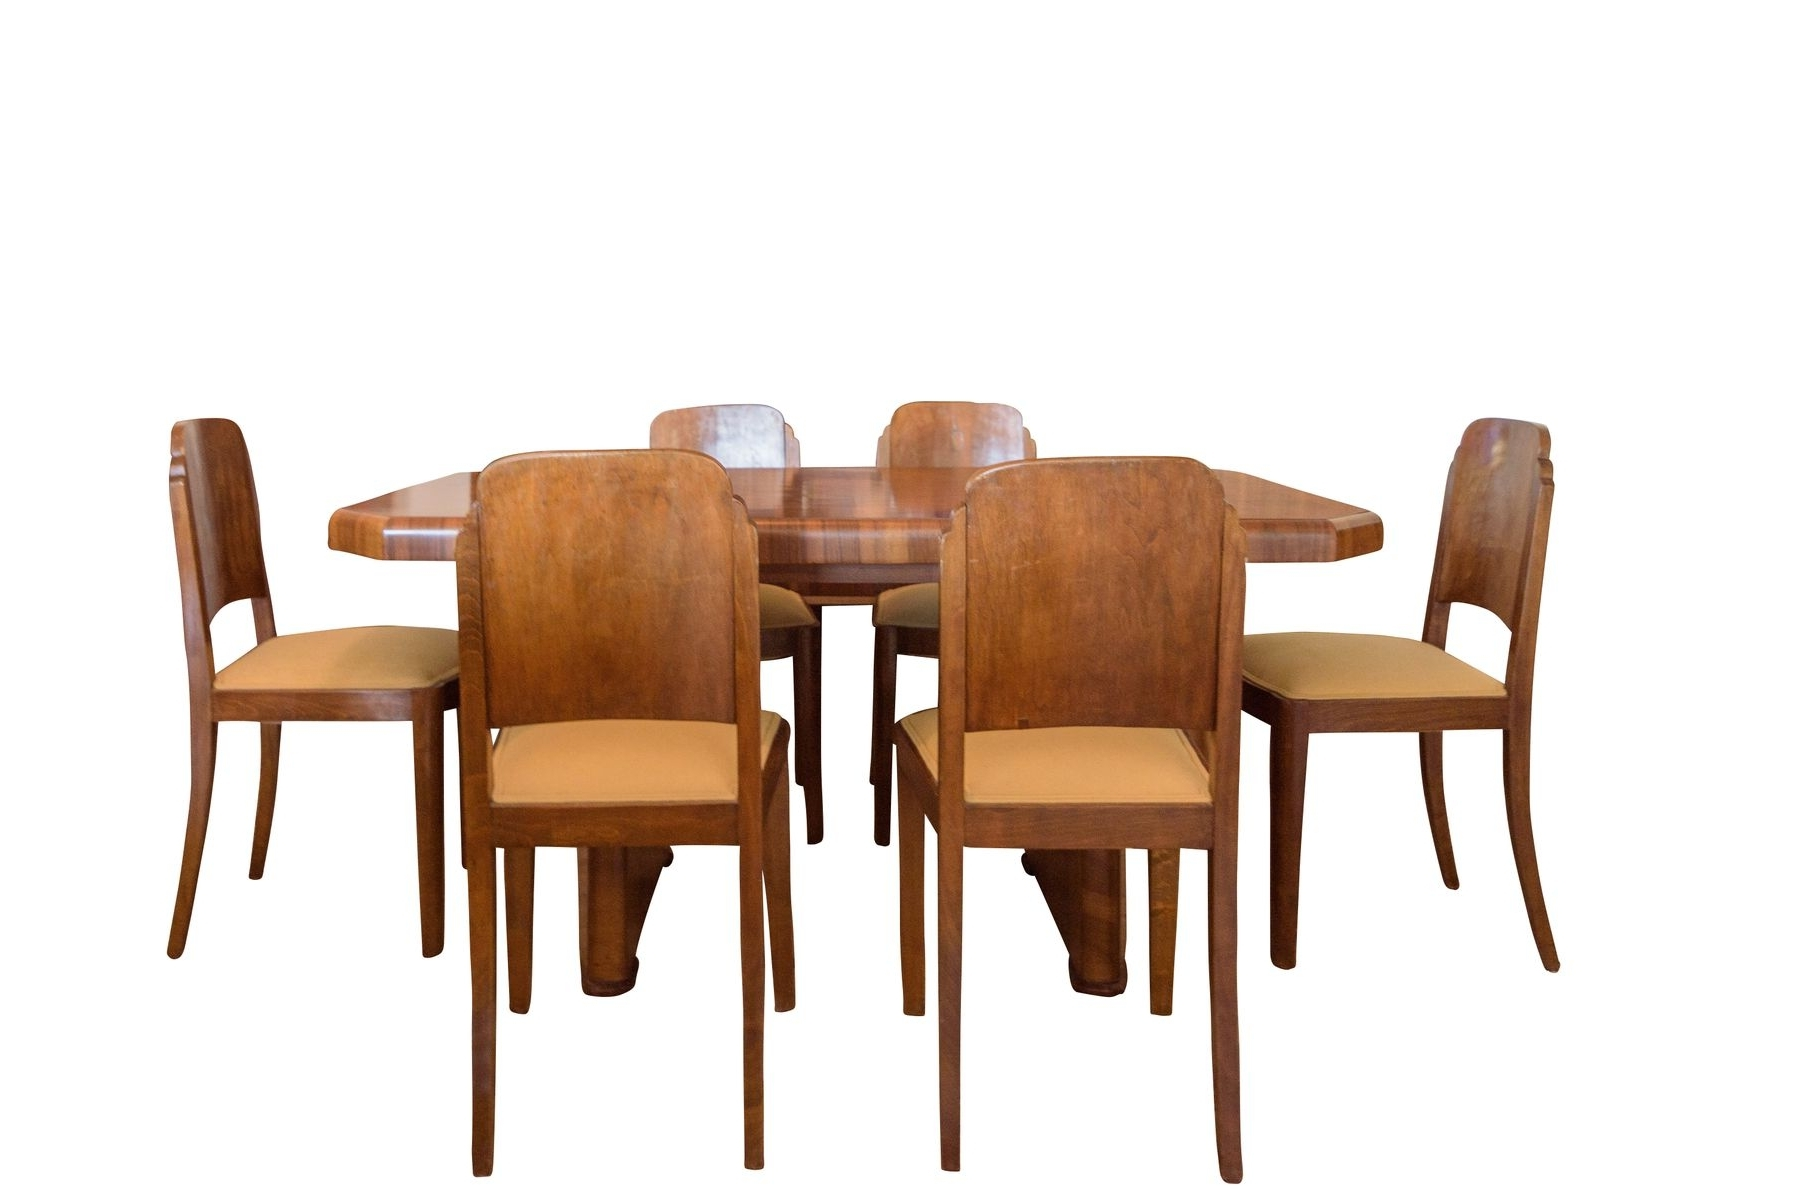 Most Popular Walnut Dining Tables And 6 Chairs Throughout Art Deco Walnut Dining Table & 6 Chairs, 1920S For Sale At Pamono (View 19 of 25)